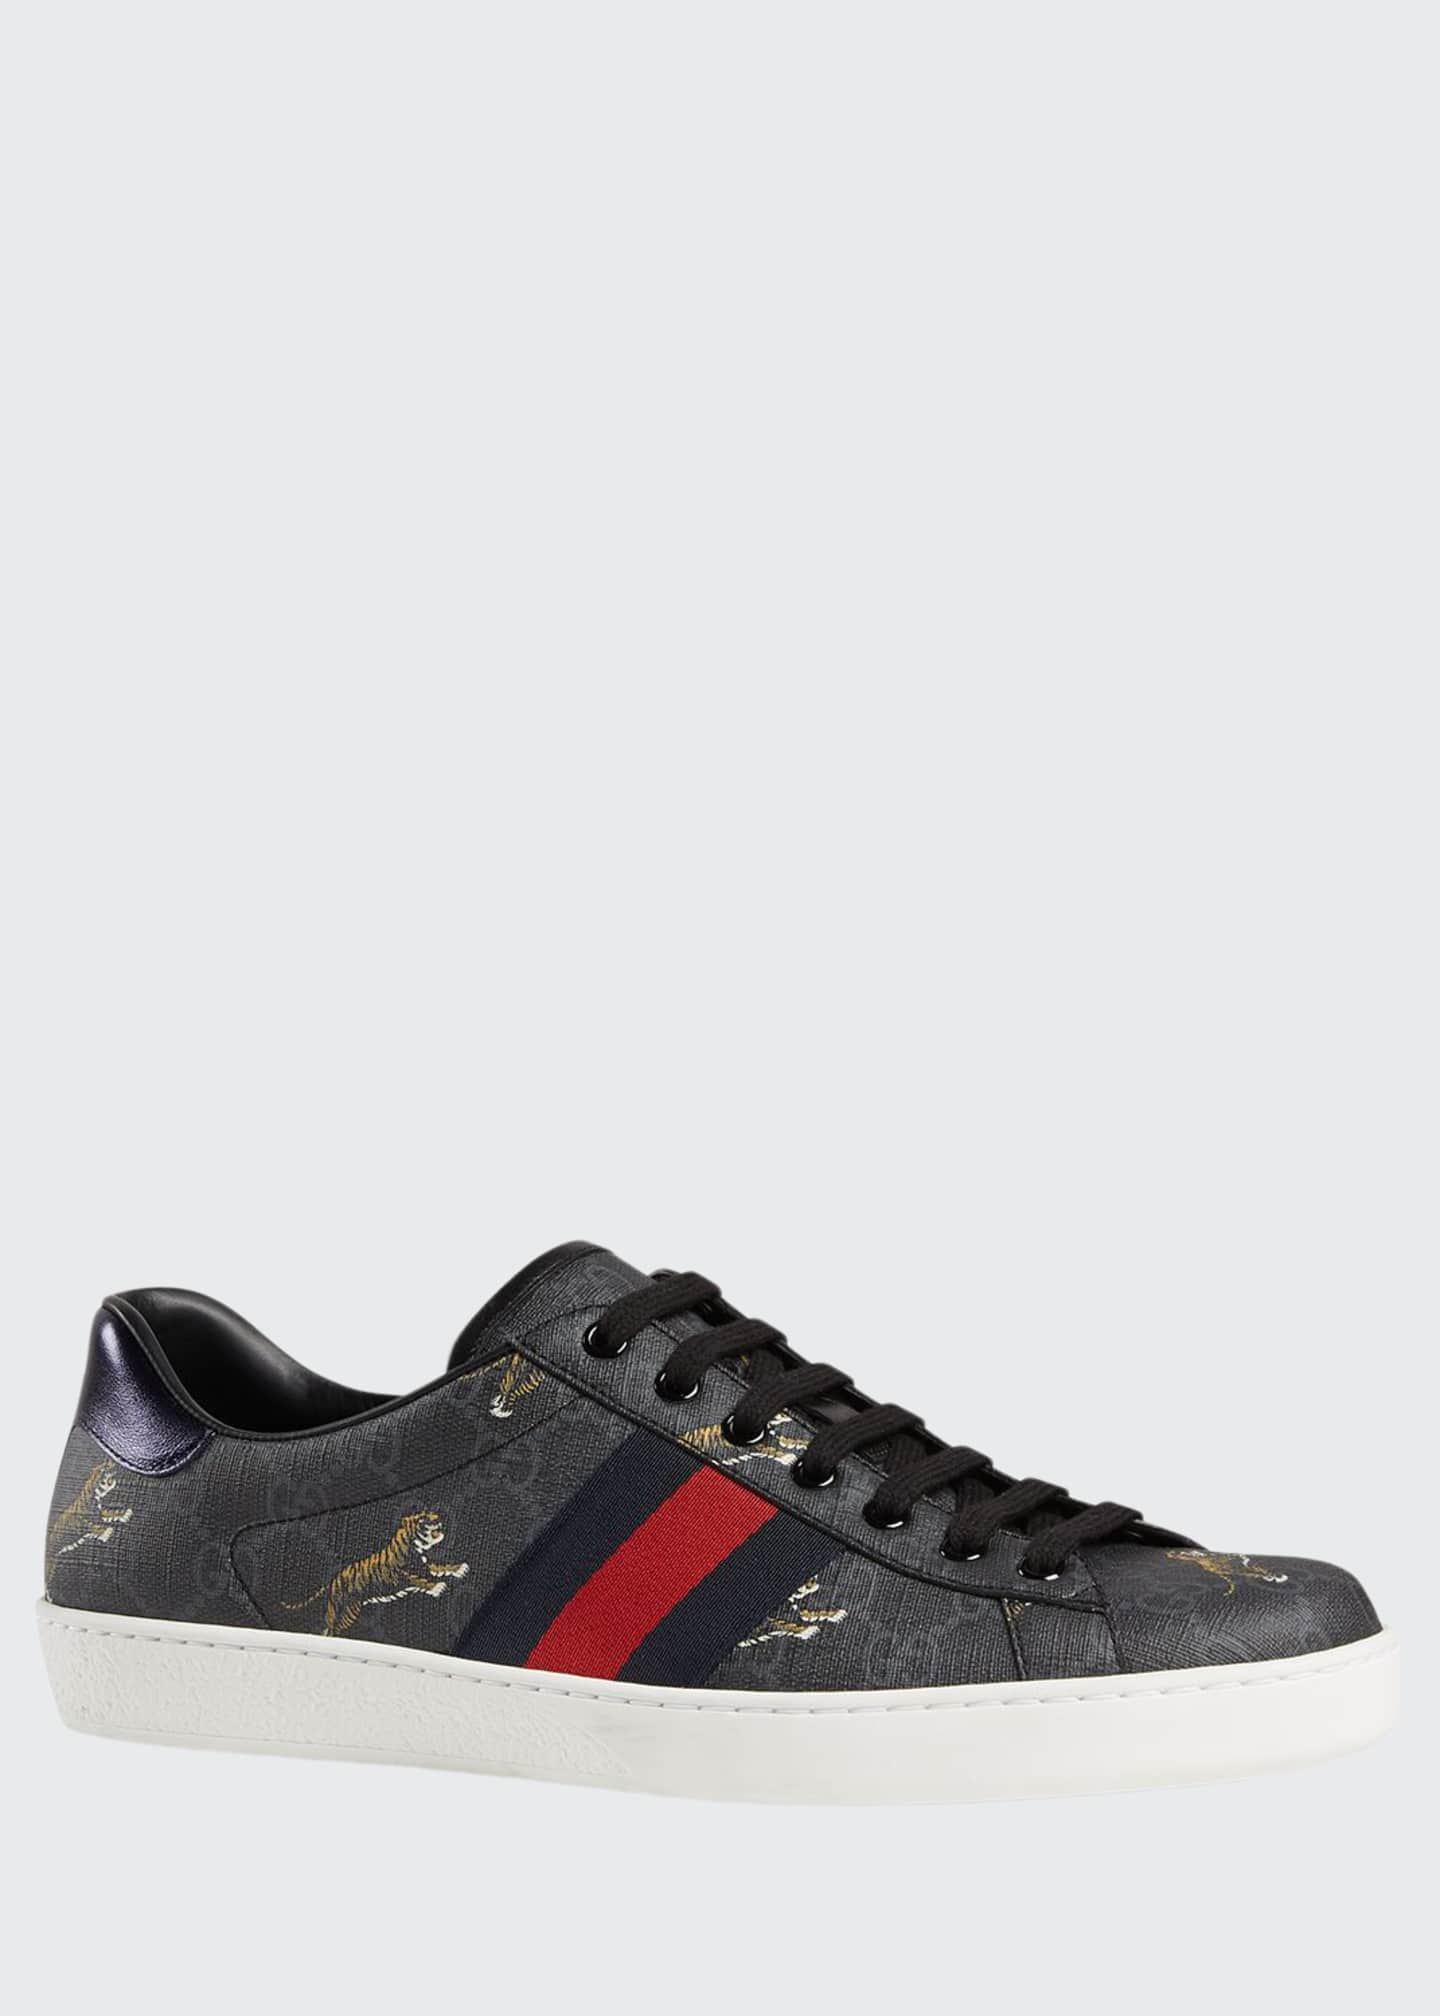 Gucci Men's New Ace Low-Top Sneakers With Tigers